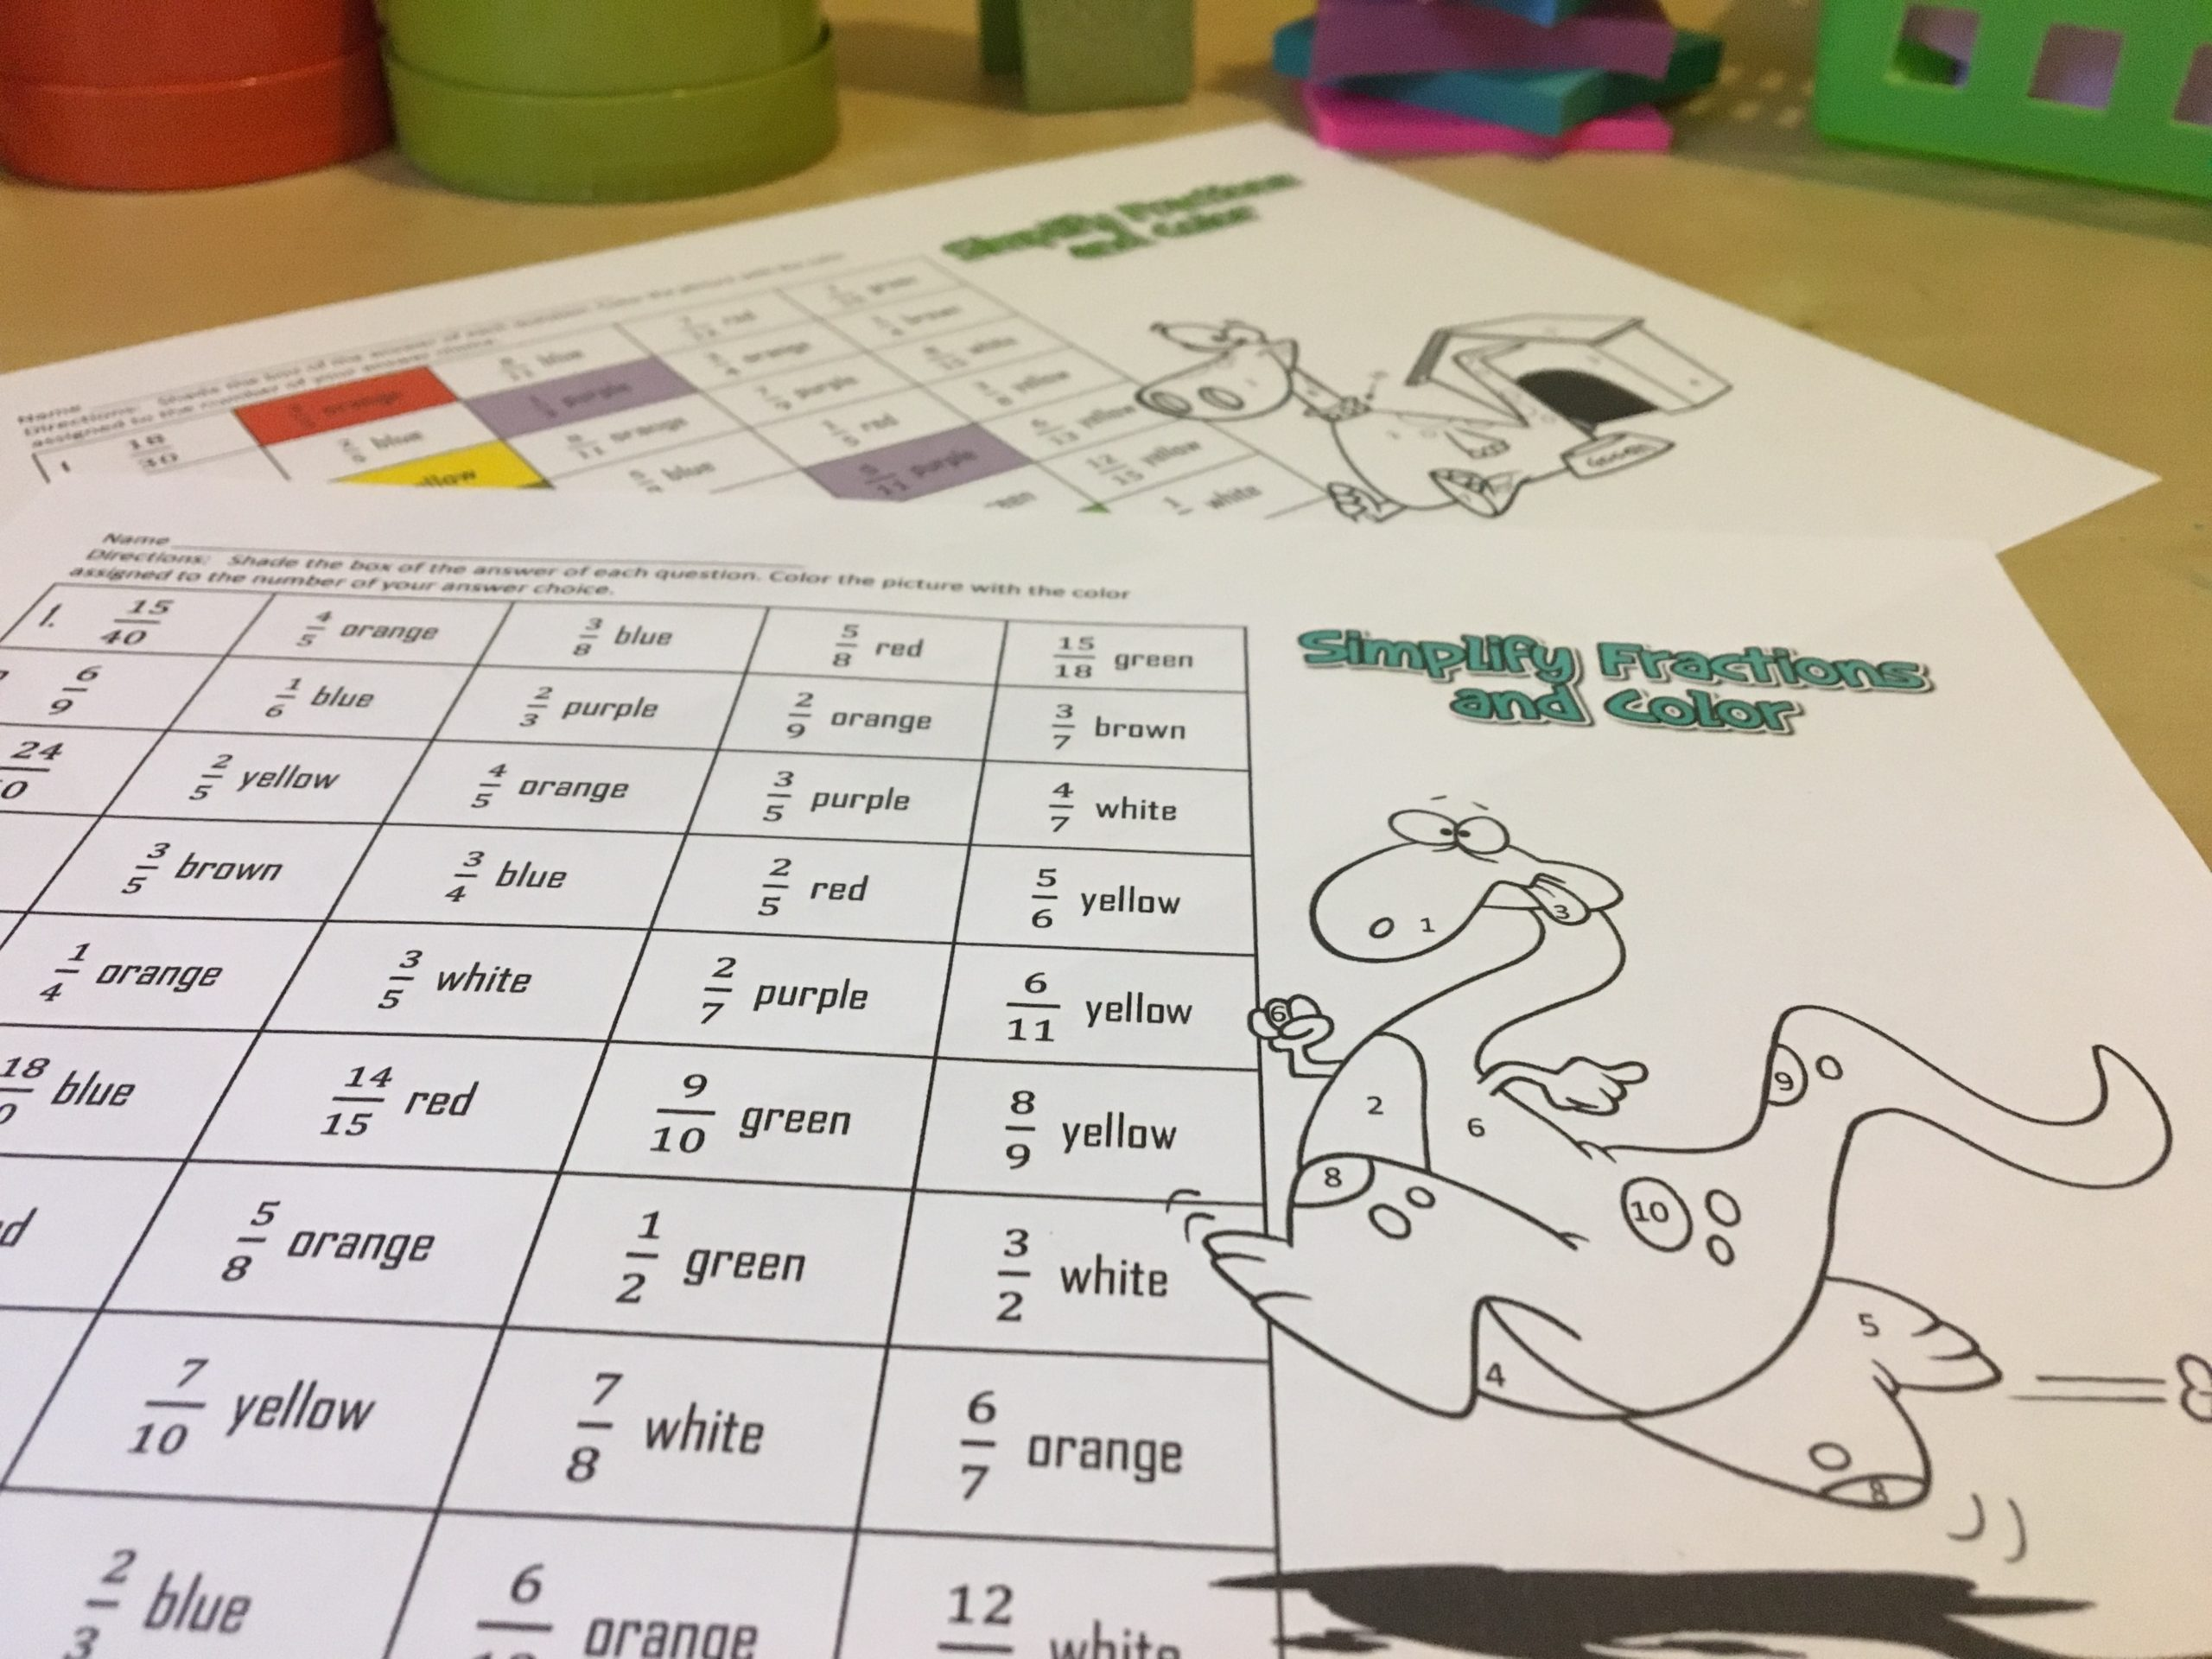 photograph regarding Simplifying Fractions Game Printable identify 11 Tremendous Exciting Routines for Simplifying Fractions - Principle Galaxy